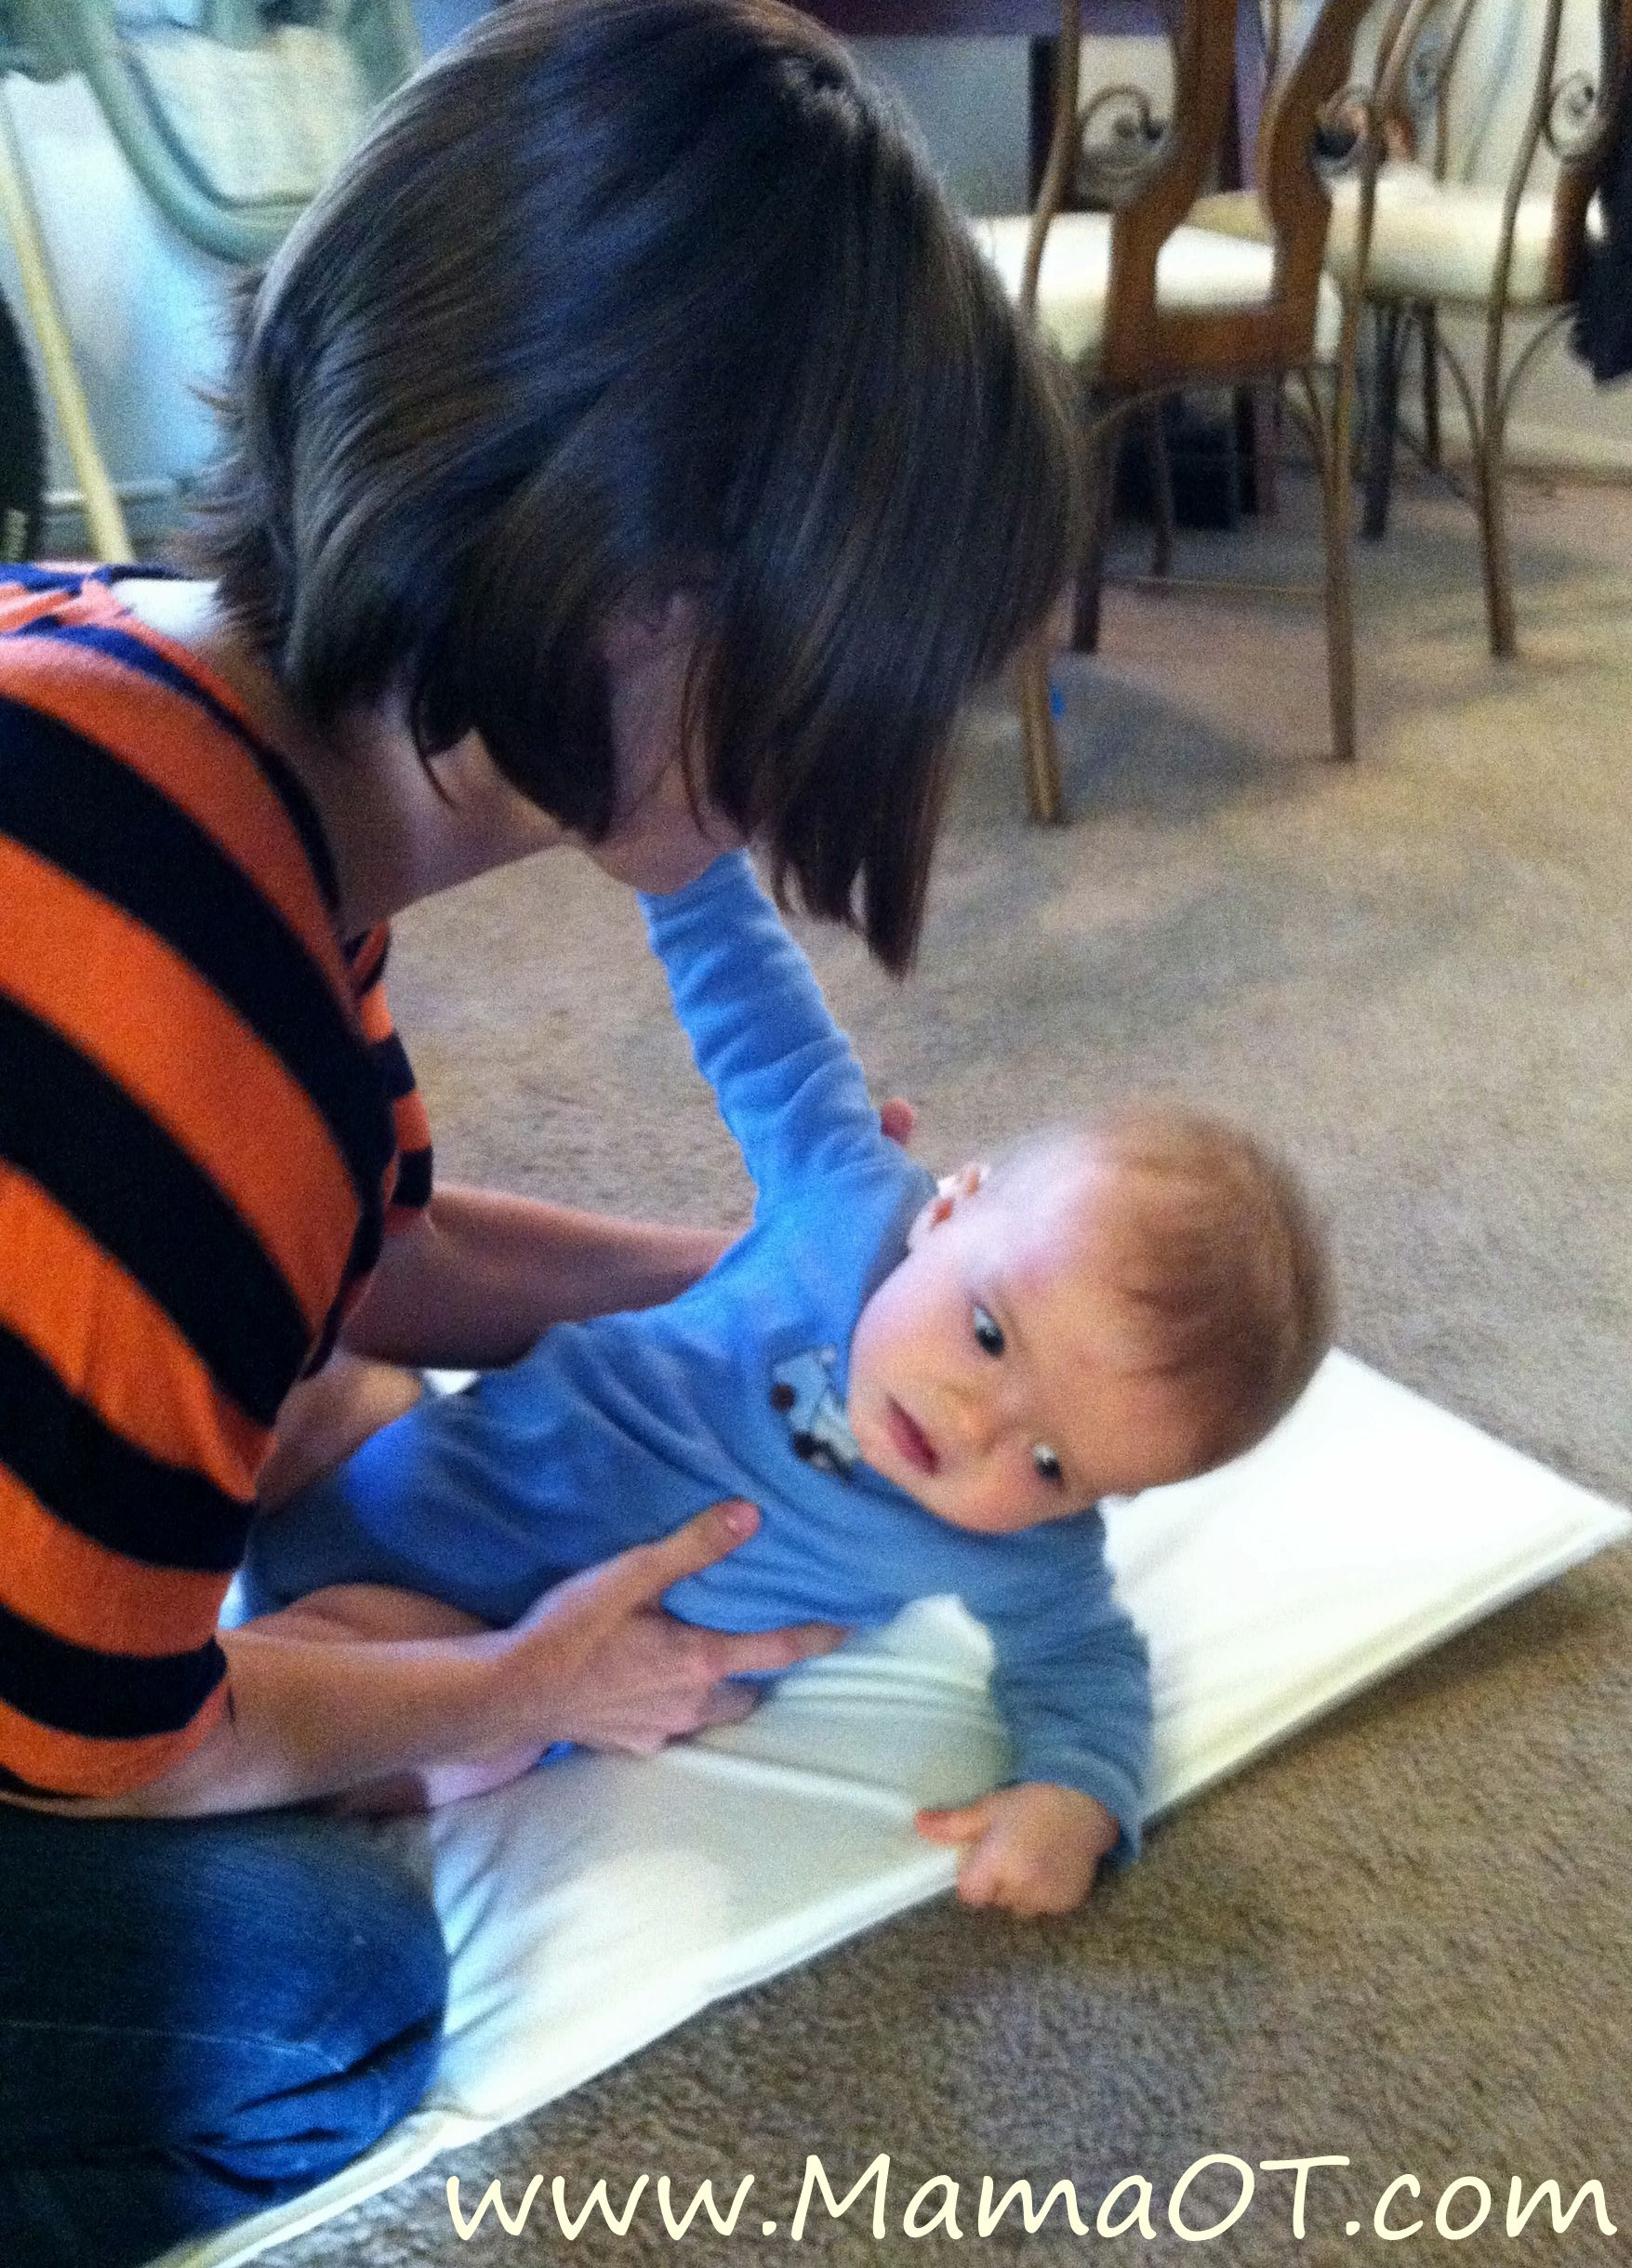 Infant Baby Care Tips : How to Help a Baby Roll Over - YouTube